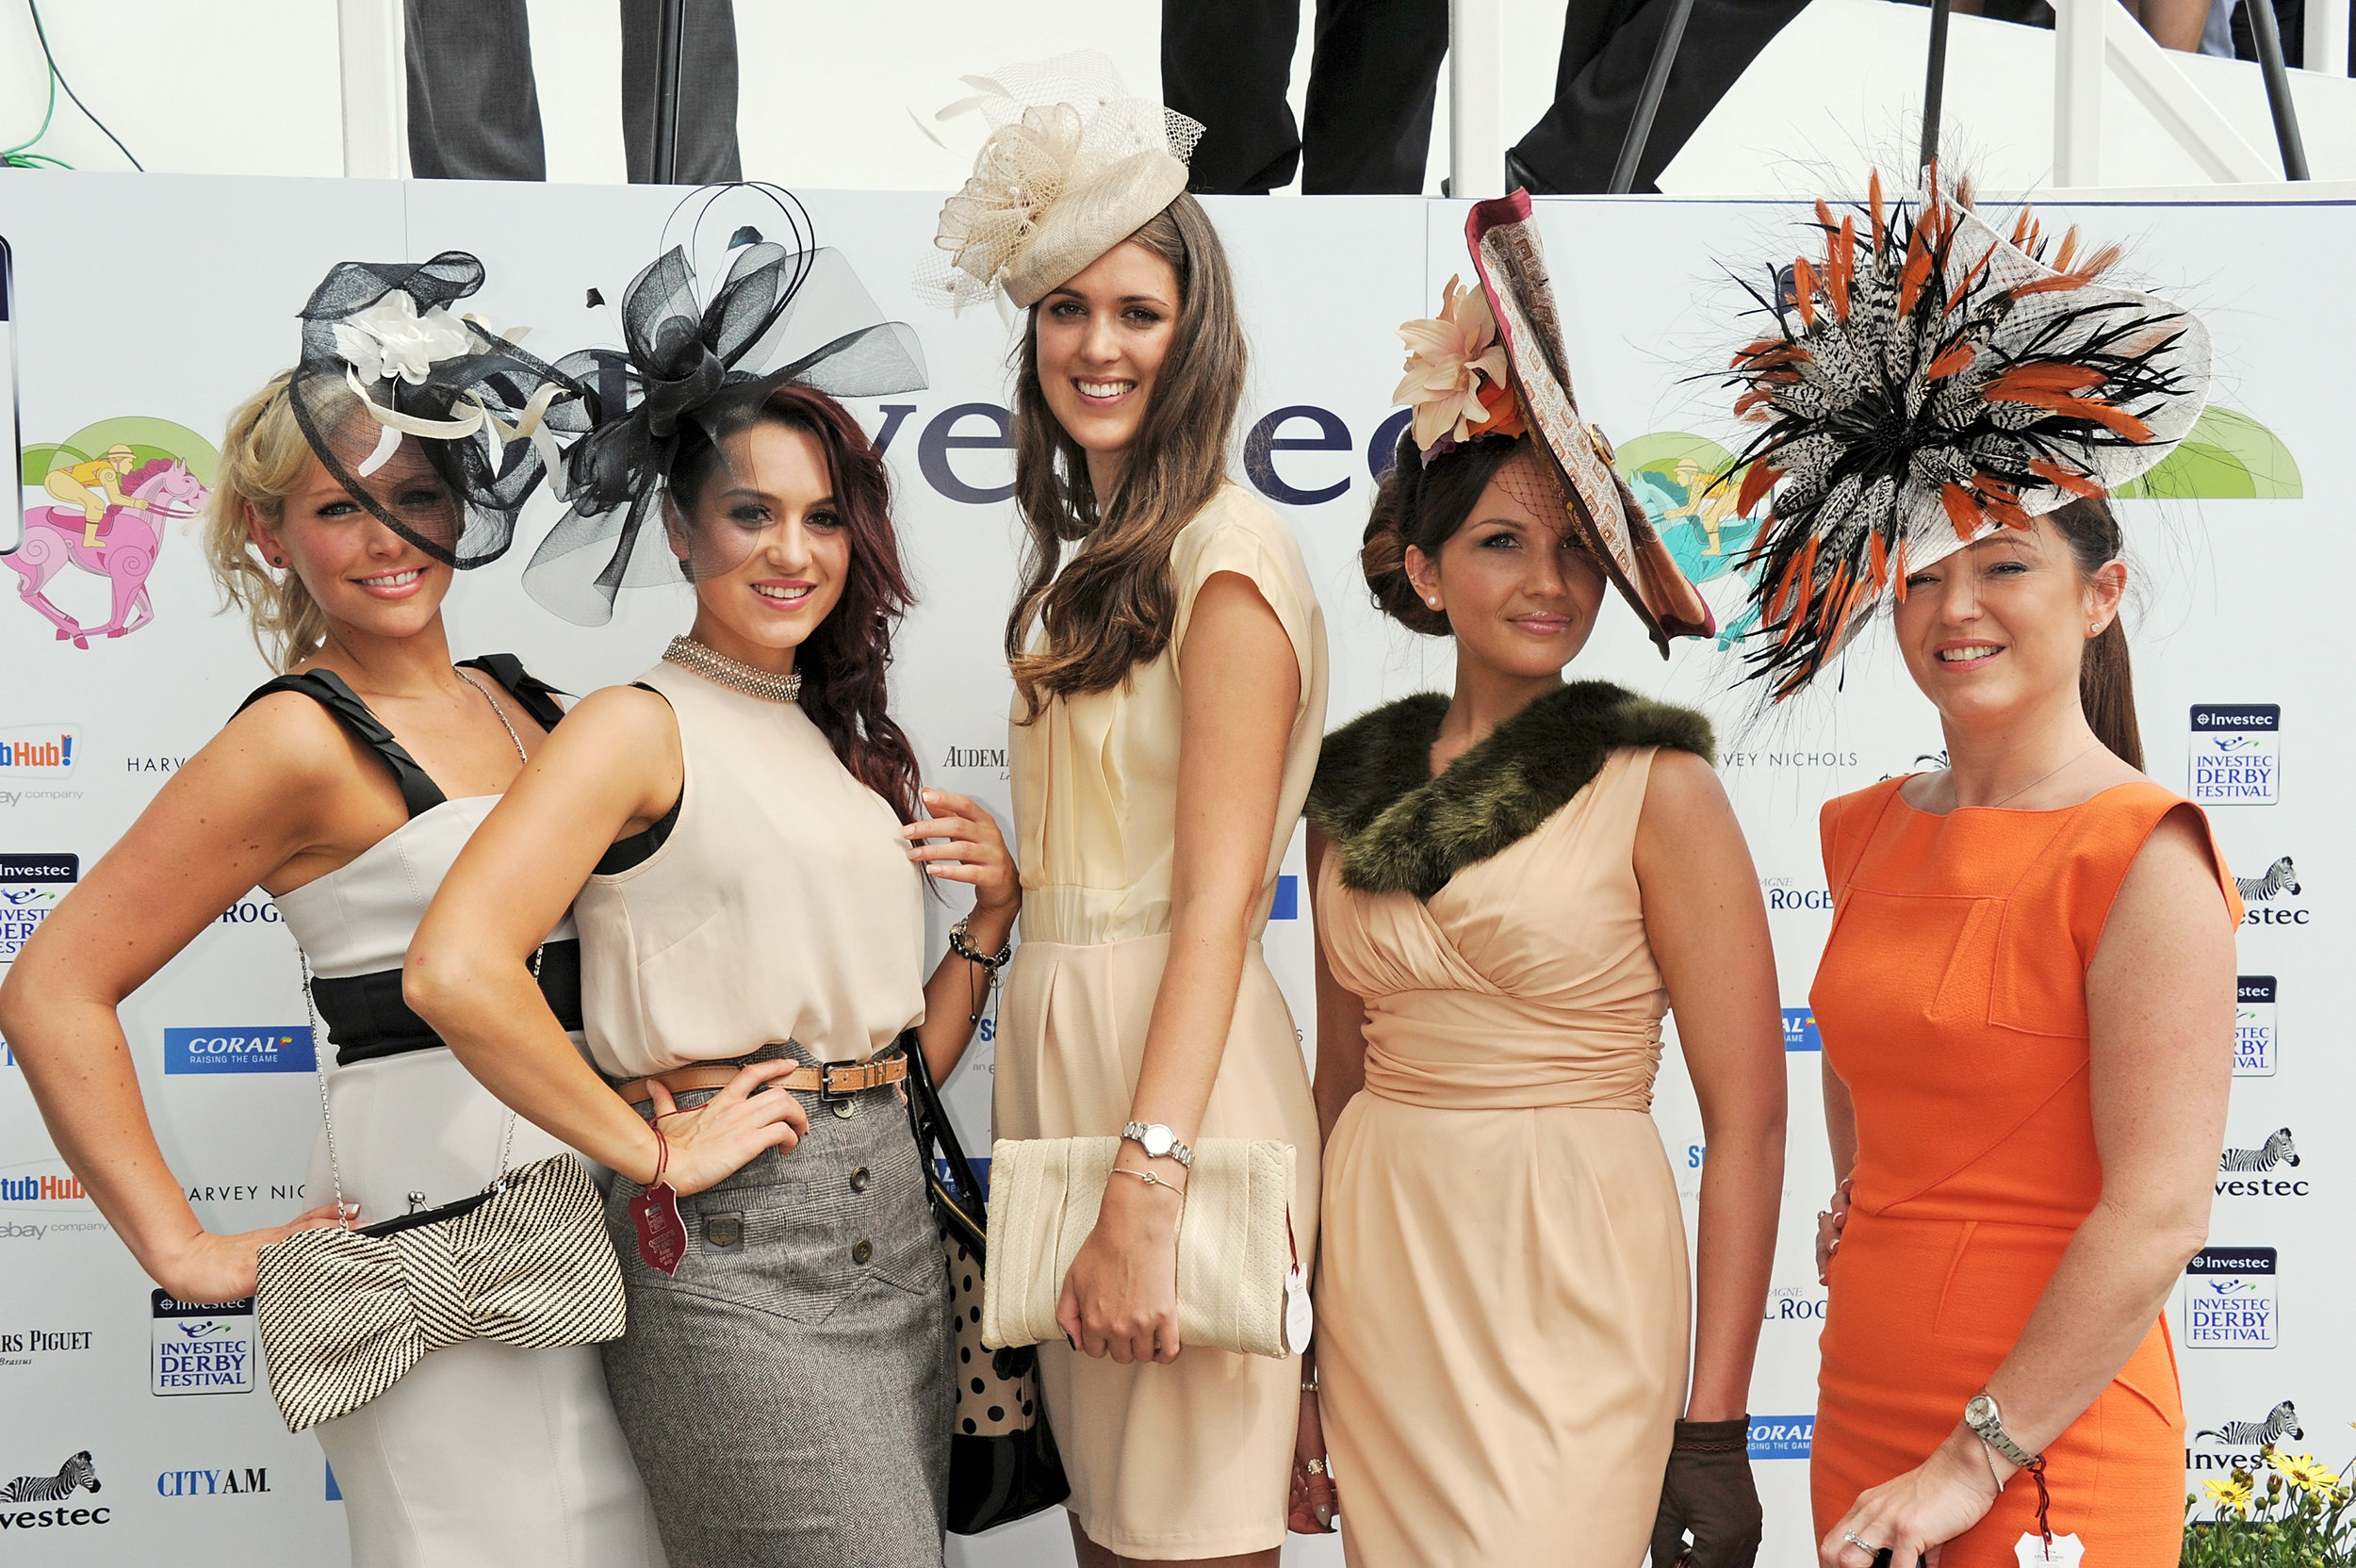 Last year's finalists in the Harvey Nichols Best Dressed competition at Epsom Downs.